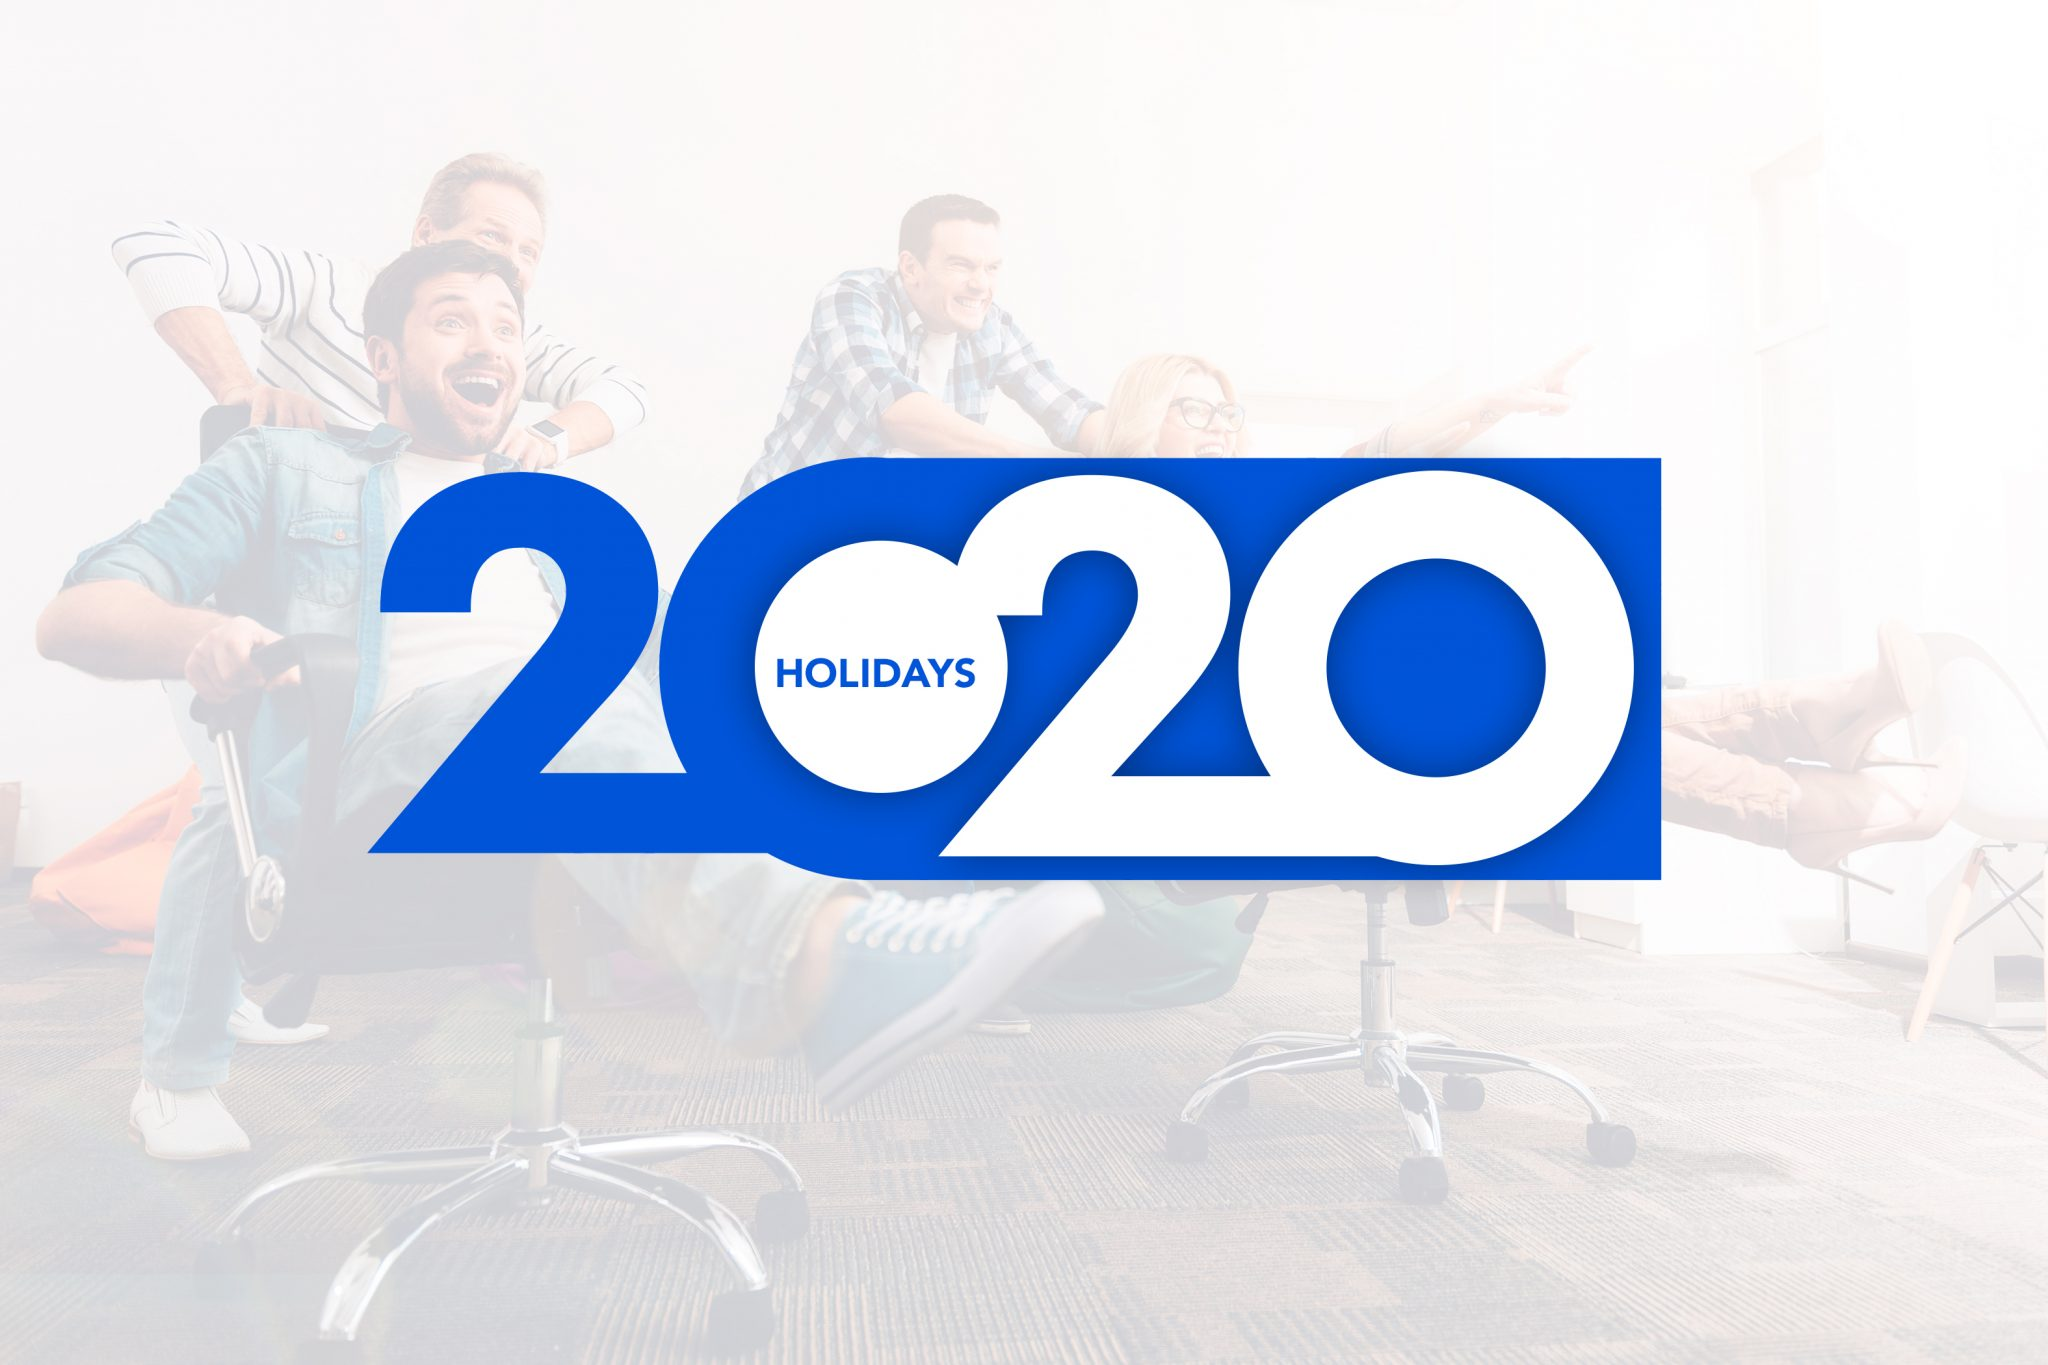 2020 Vacations: Get 55 Days Off Using Annual Leave Credit